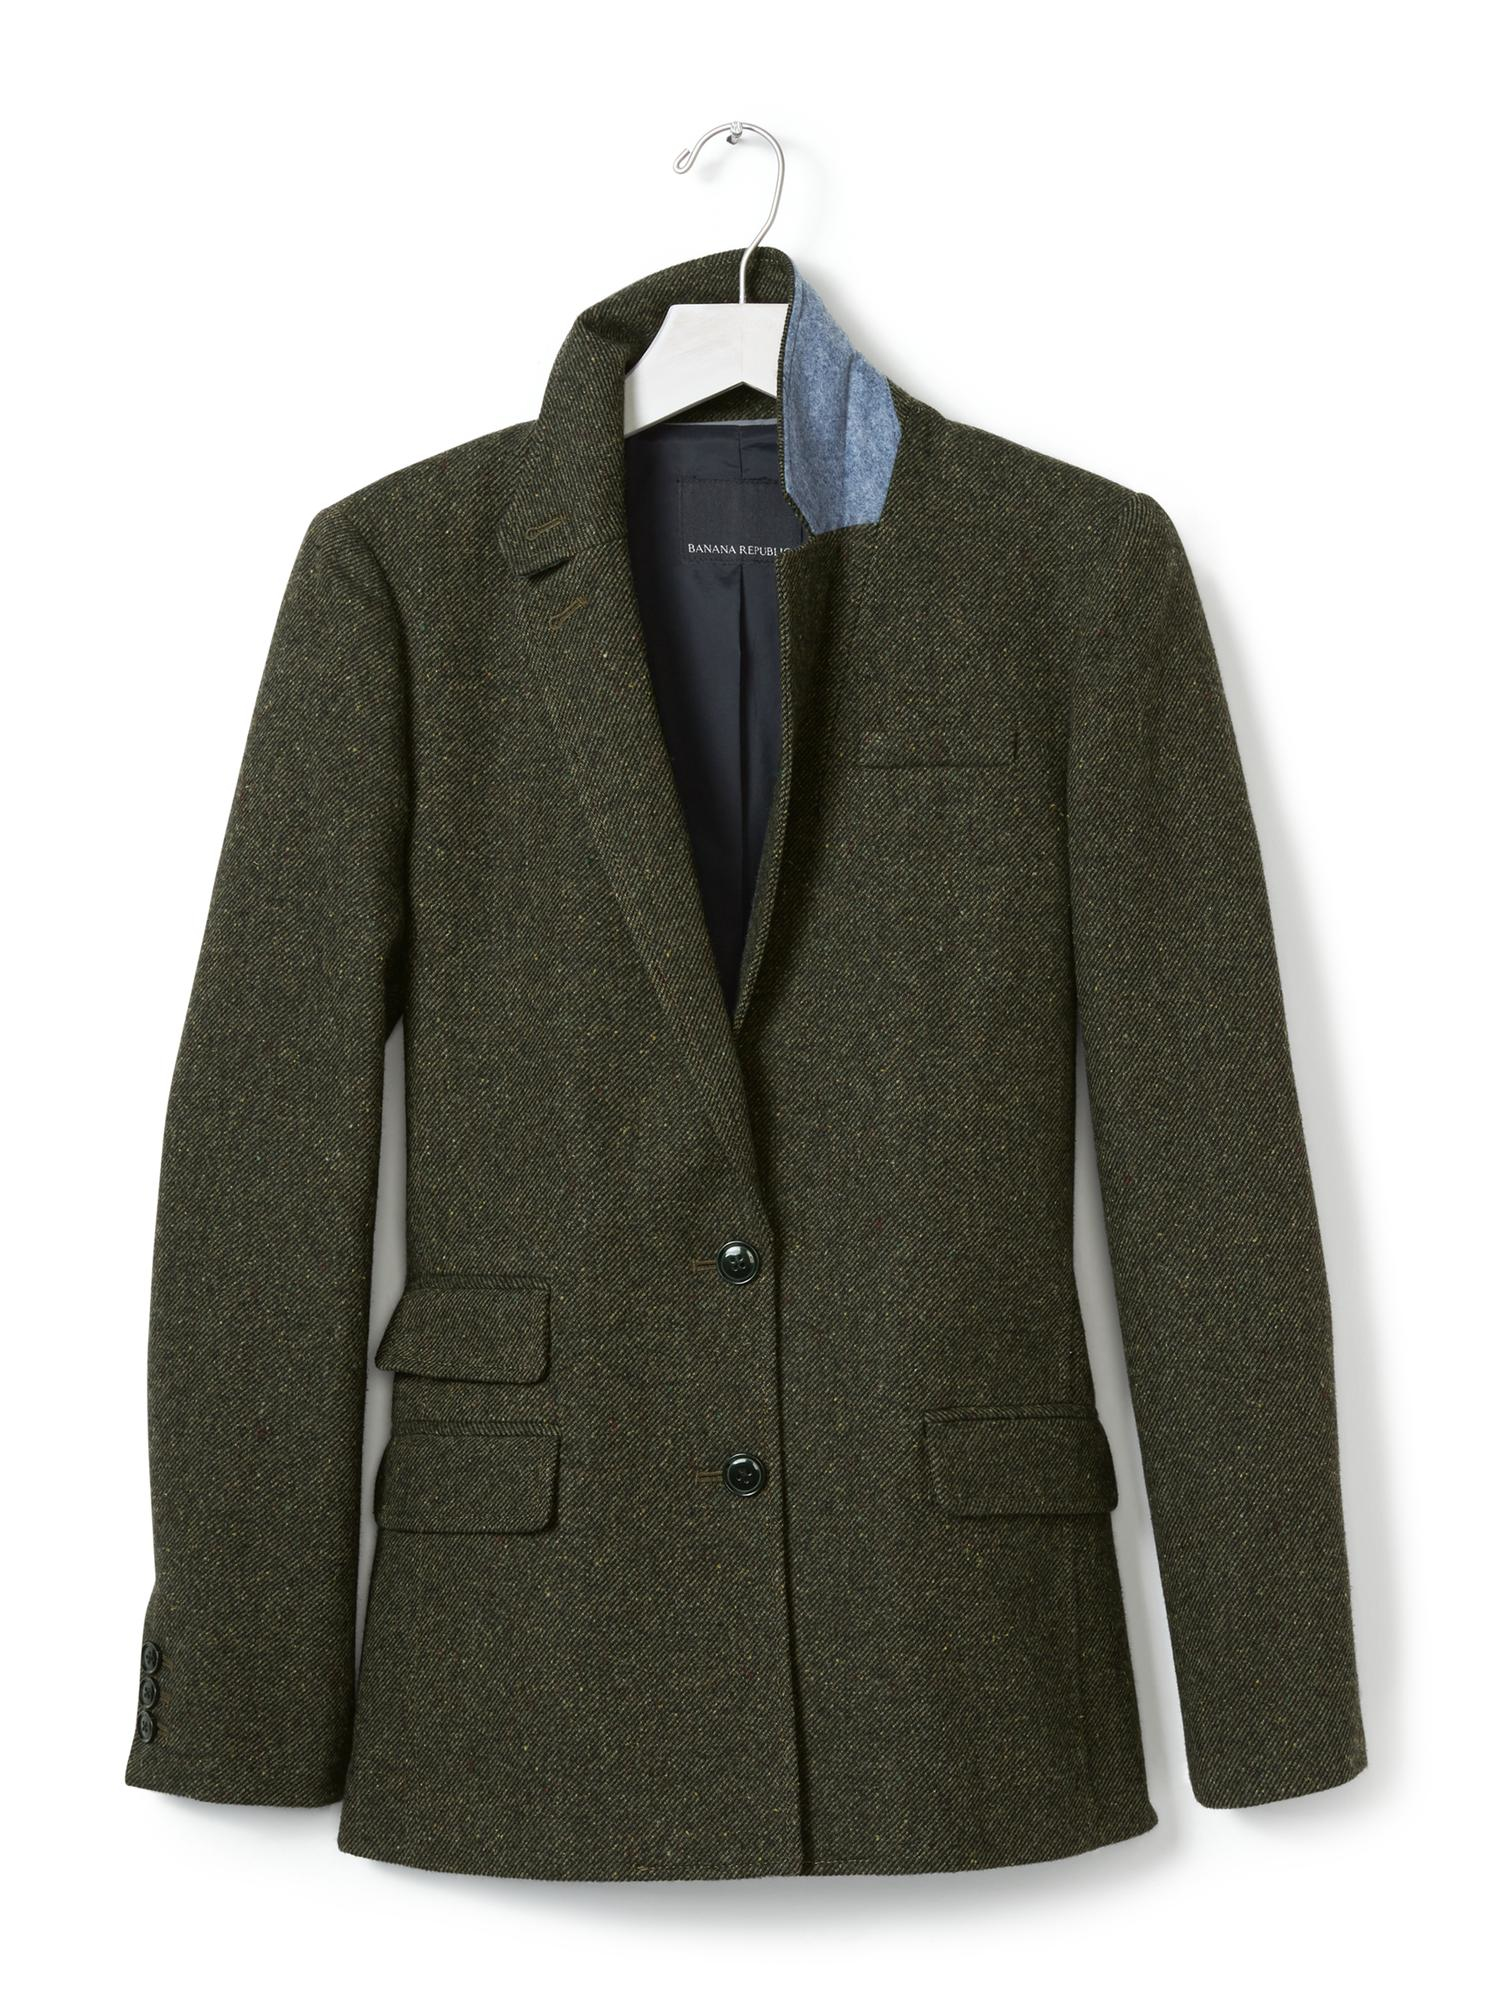 aa37dd20d7c7 Lyst - Banana Republic Speckled Olive Hacking Jacket in Green